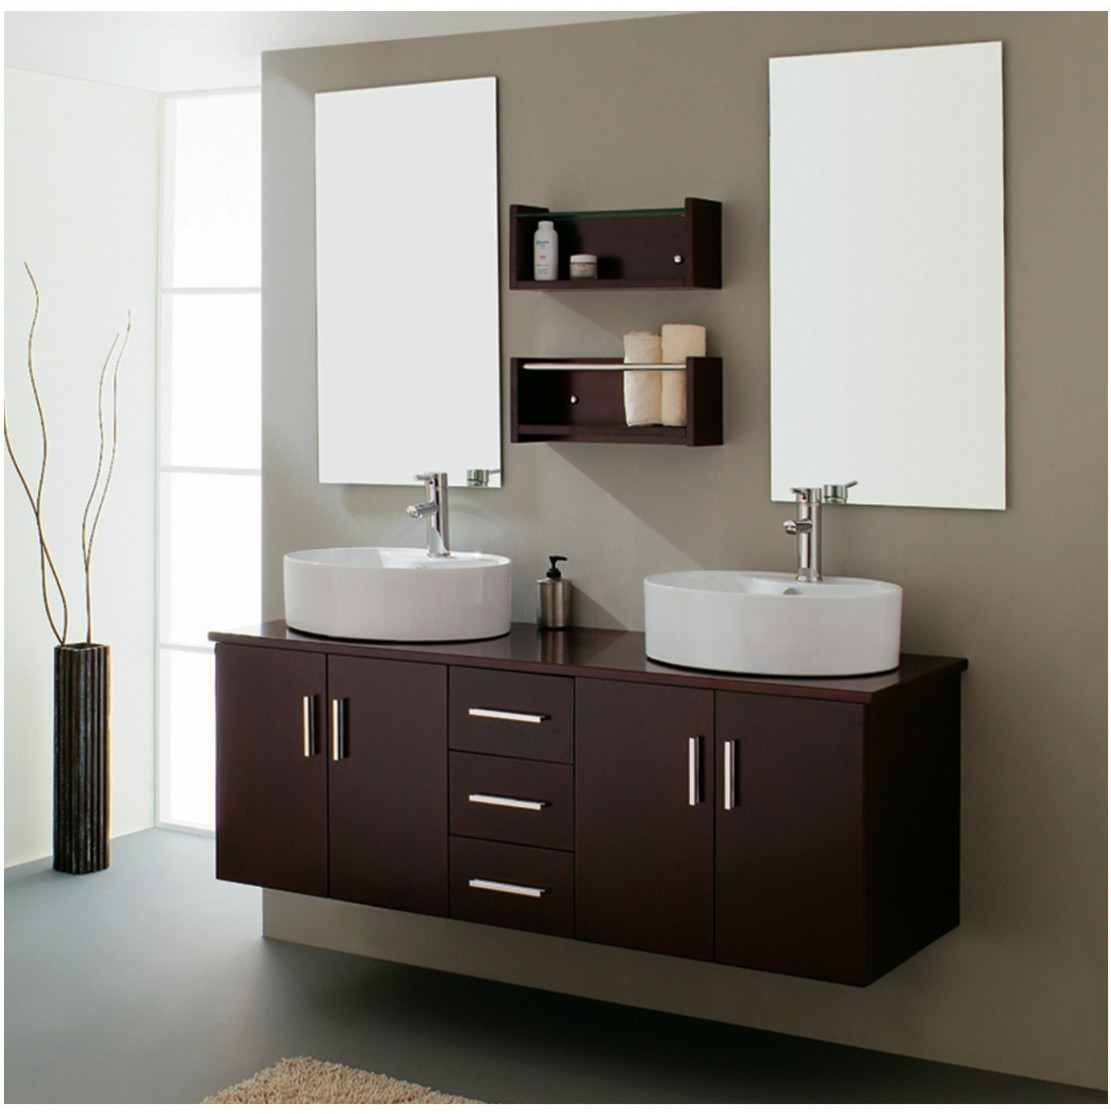 Bathroom Vanity Decor Modern Bathroom Double Sink Home Decorating Ideas